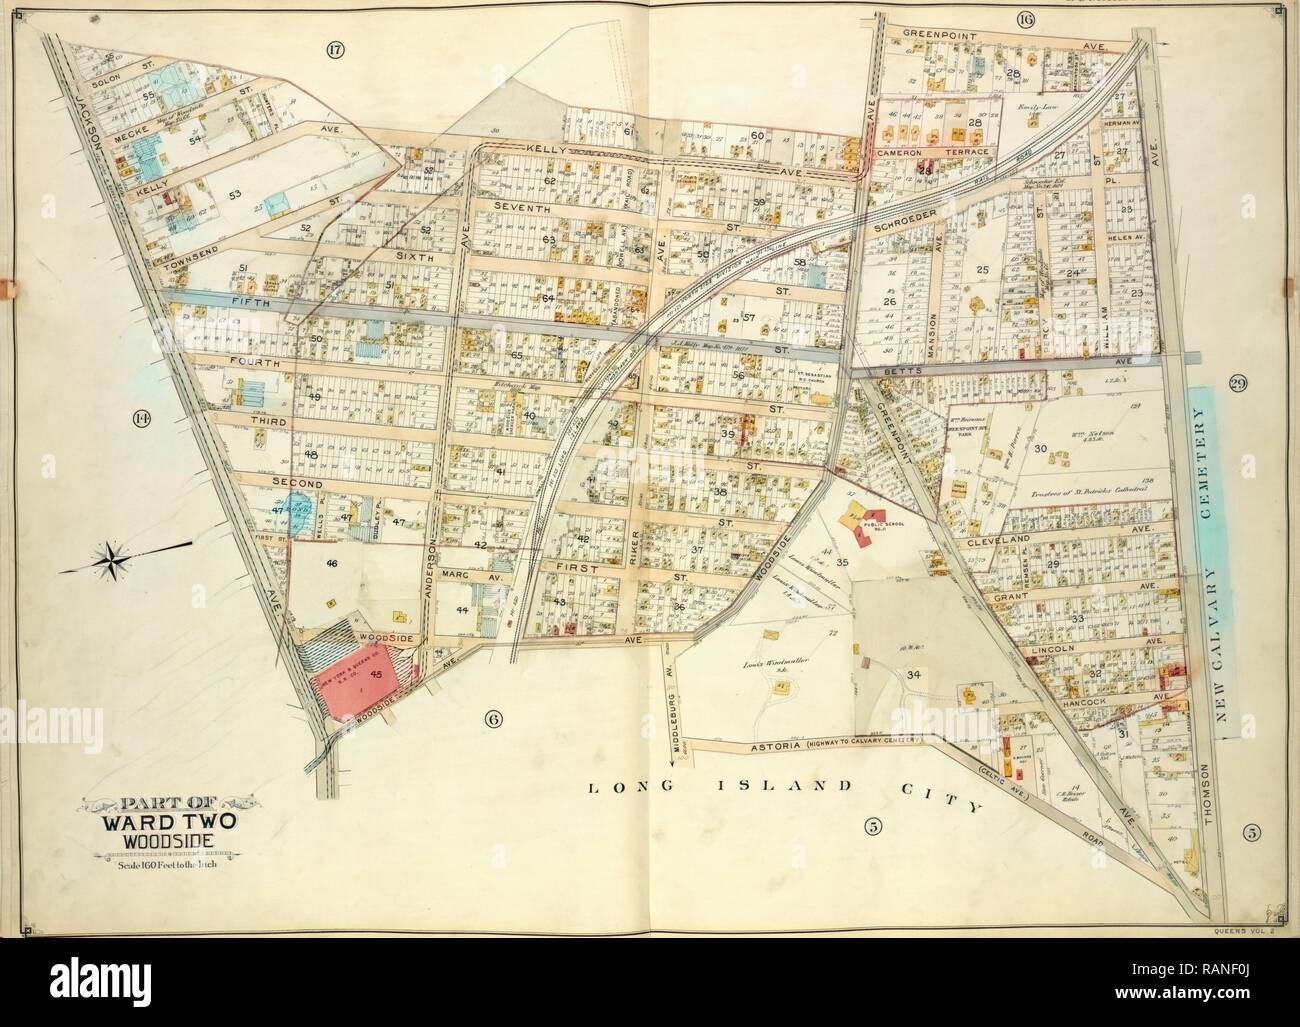 Queens, Vol. 2, Double Page Plate No. 15, Part of Ward Two Woodside on missouri city map, caldwell map, manor map, plano map, katy map, nacogdoches map, galveston map, temple map, lackland map, kingwood map, wichita falls map, iran map, weslaco map, granbury map, kelly new mexico, andrews afb map, schertz map, league city map, new braunfels map, port isabel map,